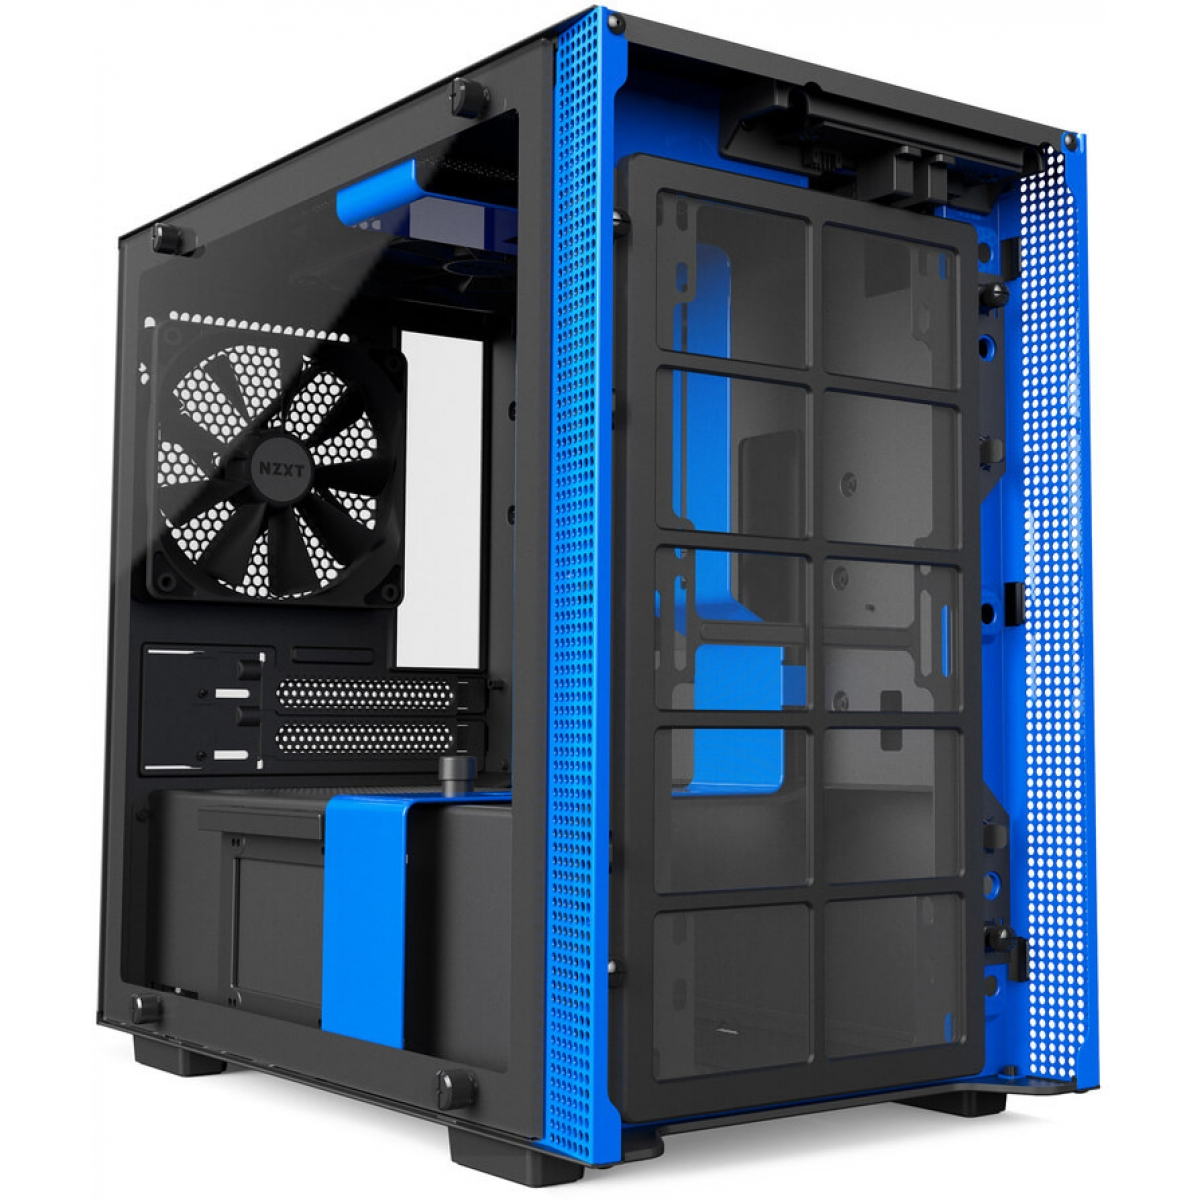 Gabinete Gamer NZXT H200, Mini Tower, Com 2 Fans, Vidro Temperado, Black-Blue, Sem Fonte, CA-H200B-BL